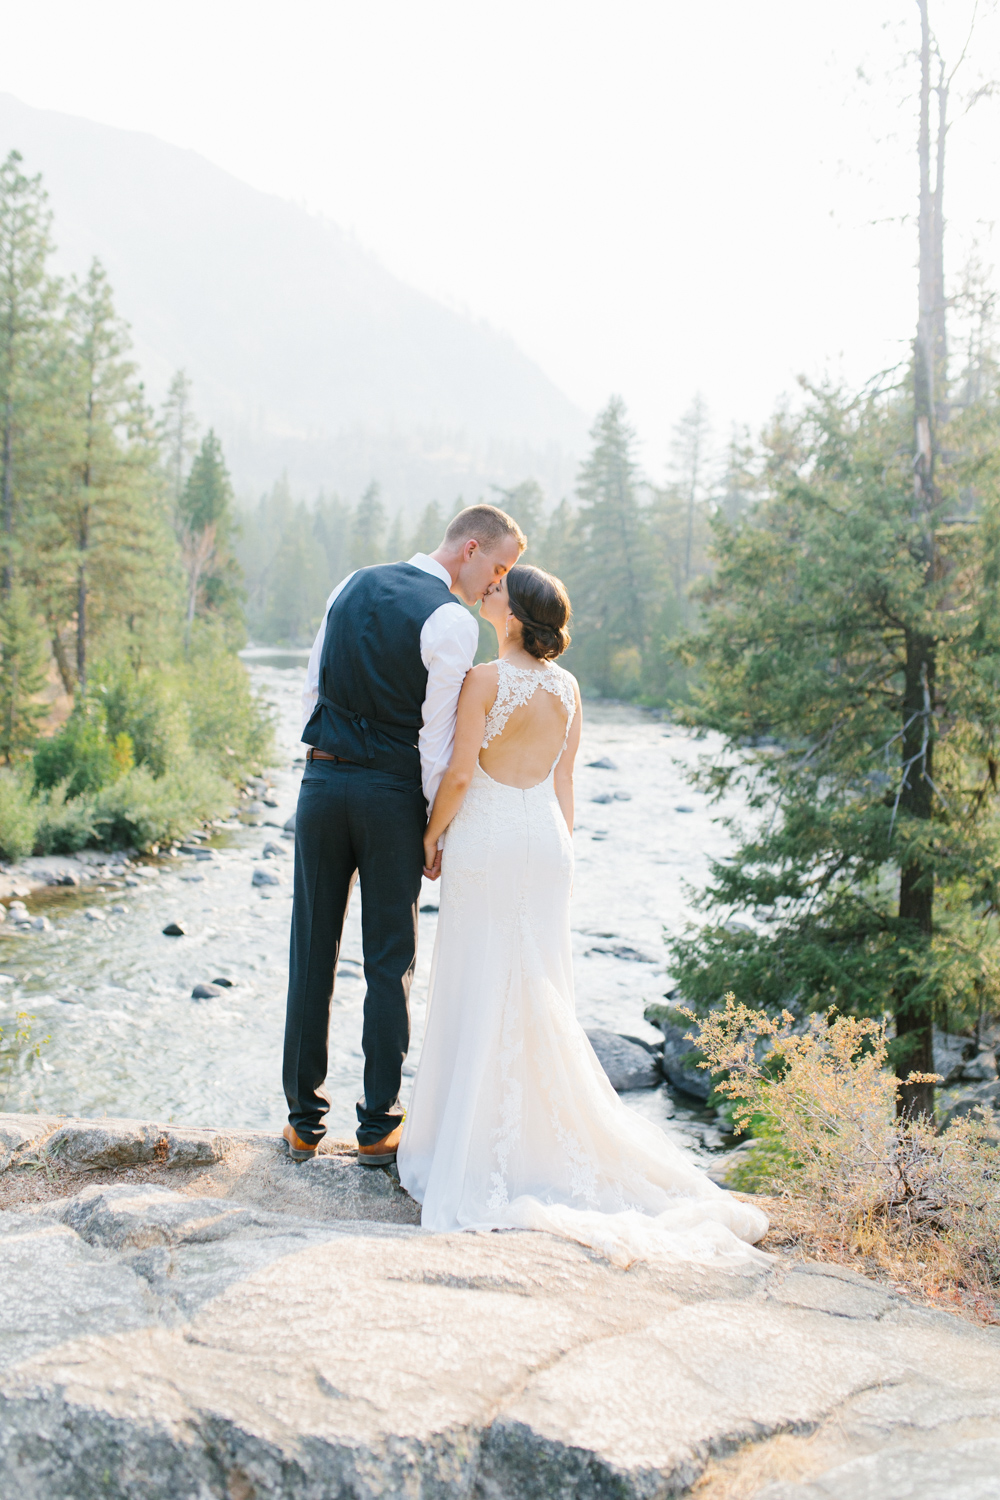 Grey and White Wedding in the Mountains of Leavenworth, Washington | Sleeping Lady | Classic and Timeless Wedding | VSCO | Stunning Mountain Top Bride and Groom Portraits on the Icicle River.jpg-3339.jpg